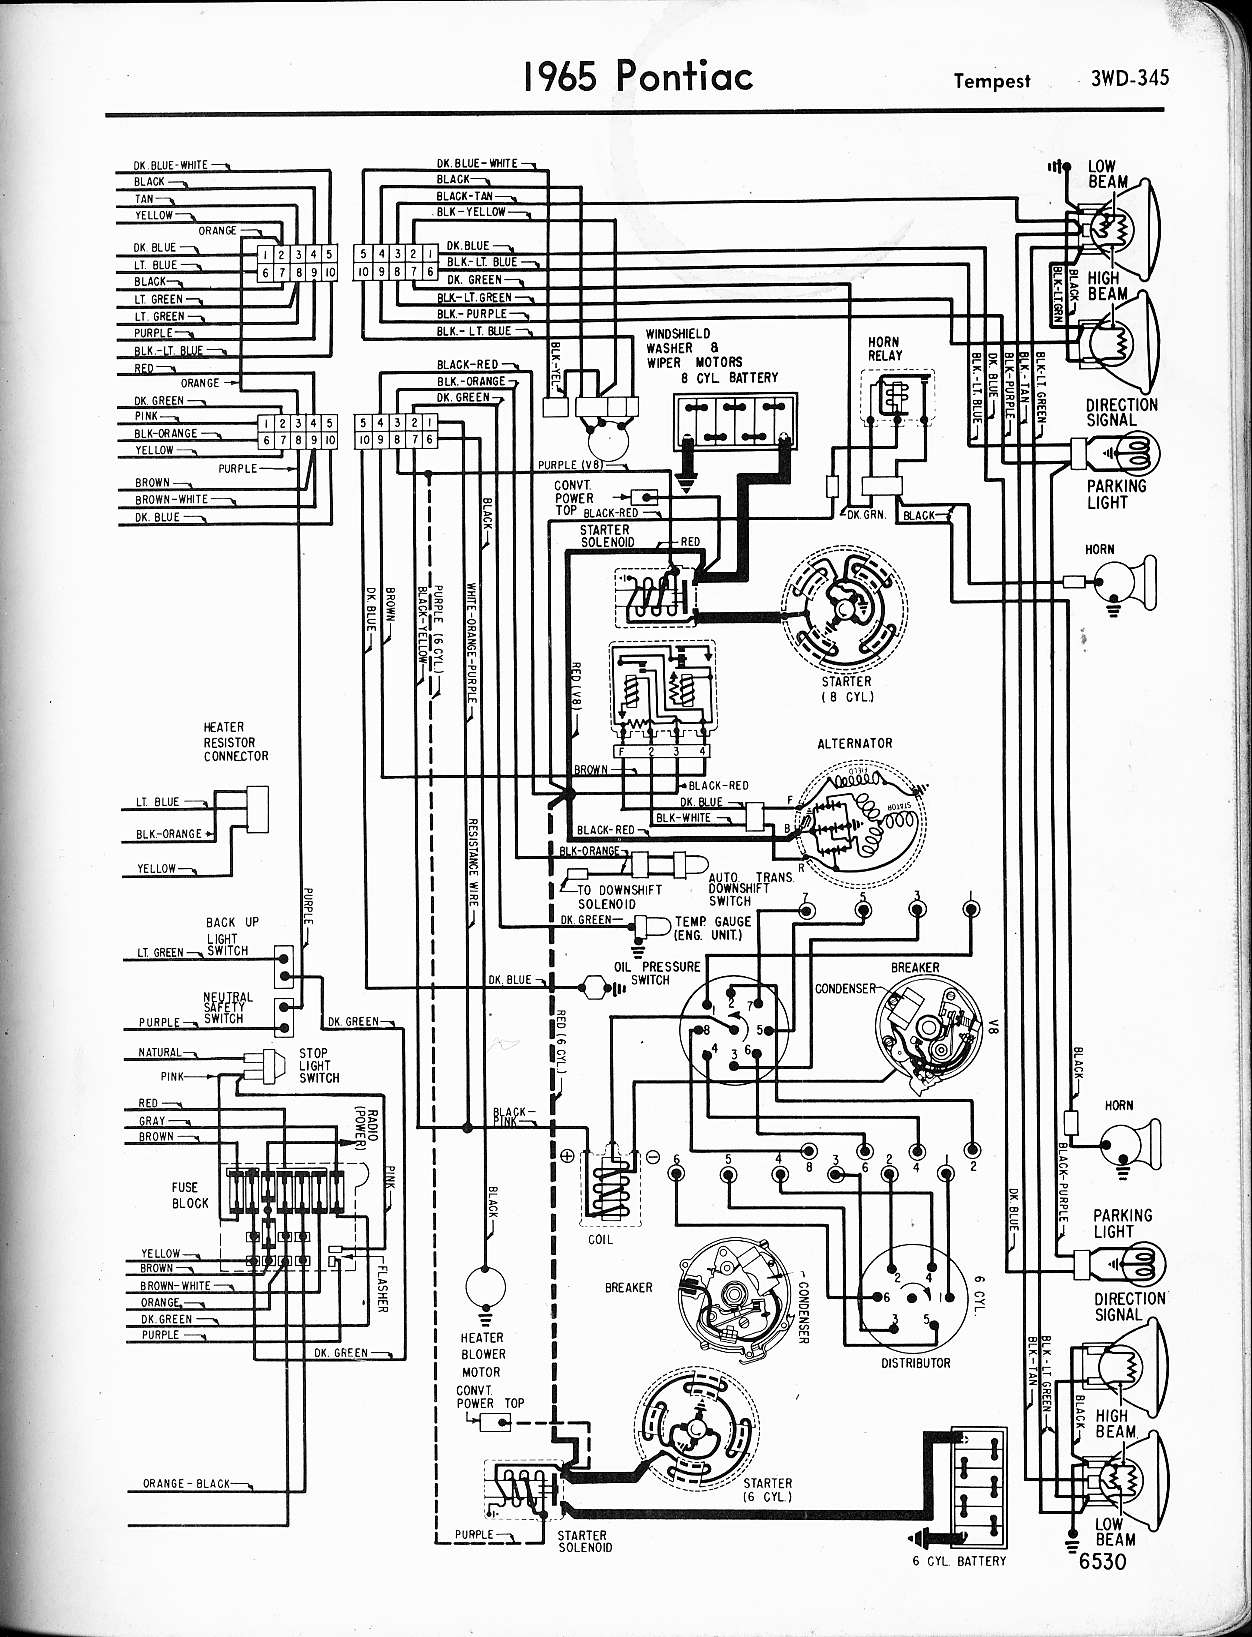 MWire5765 345 1967 gto wiring diagram 1967 gto fuse box wiring diagram \u2022 free 1965 pontiac grand prix wiring diagram at crackthecode.co